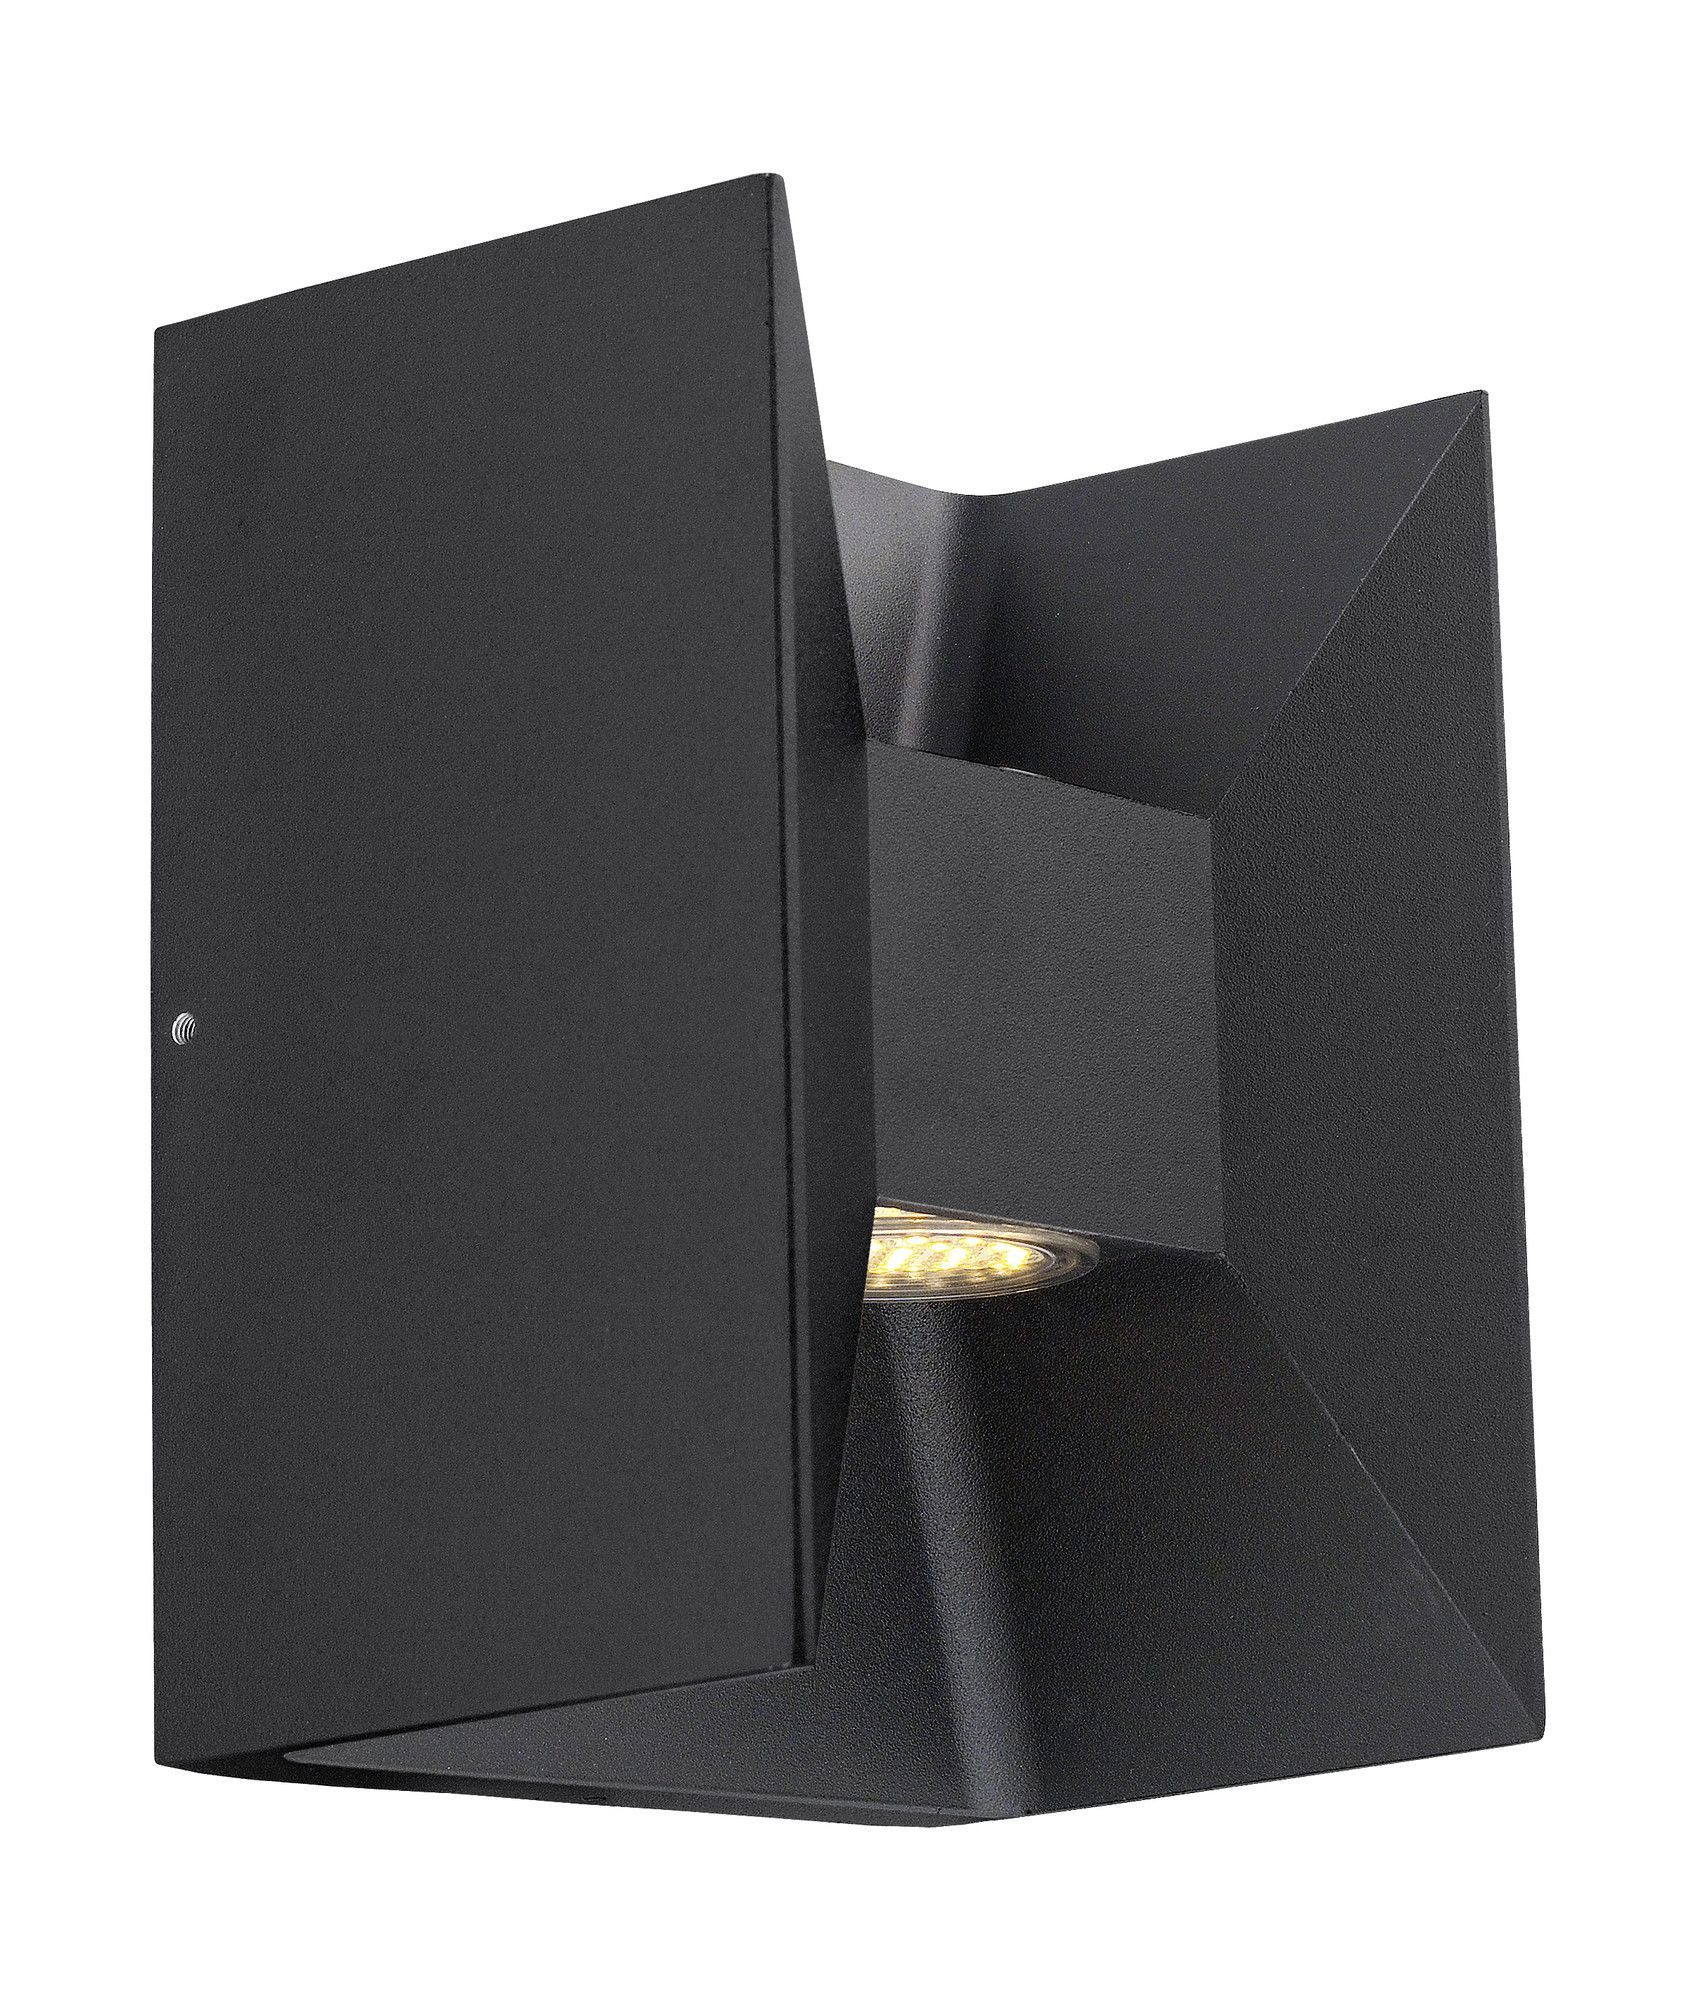 Morino light sconce products pinterest outdoor walls and